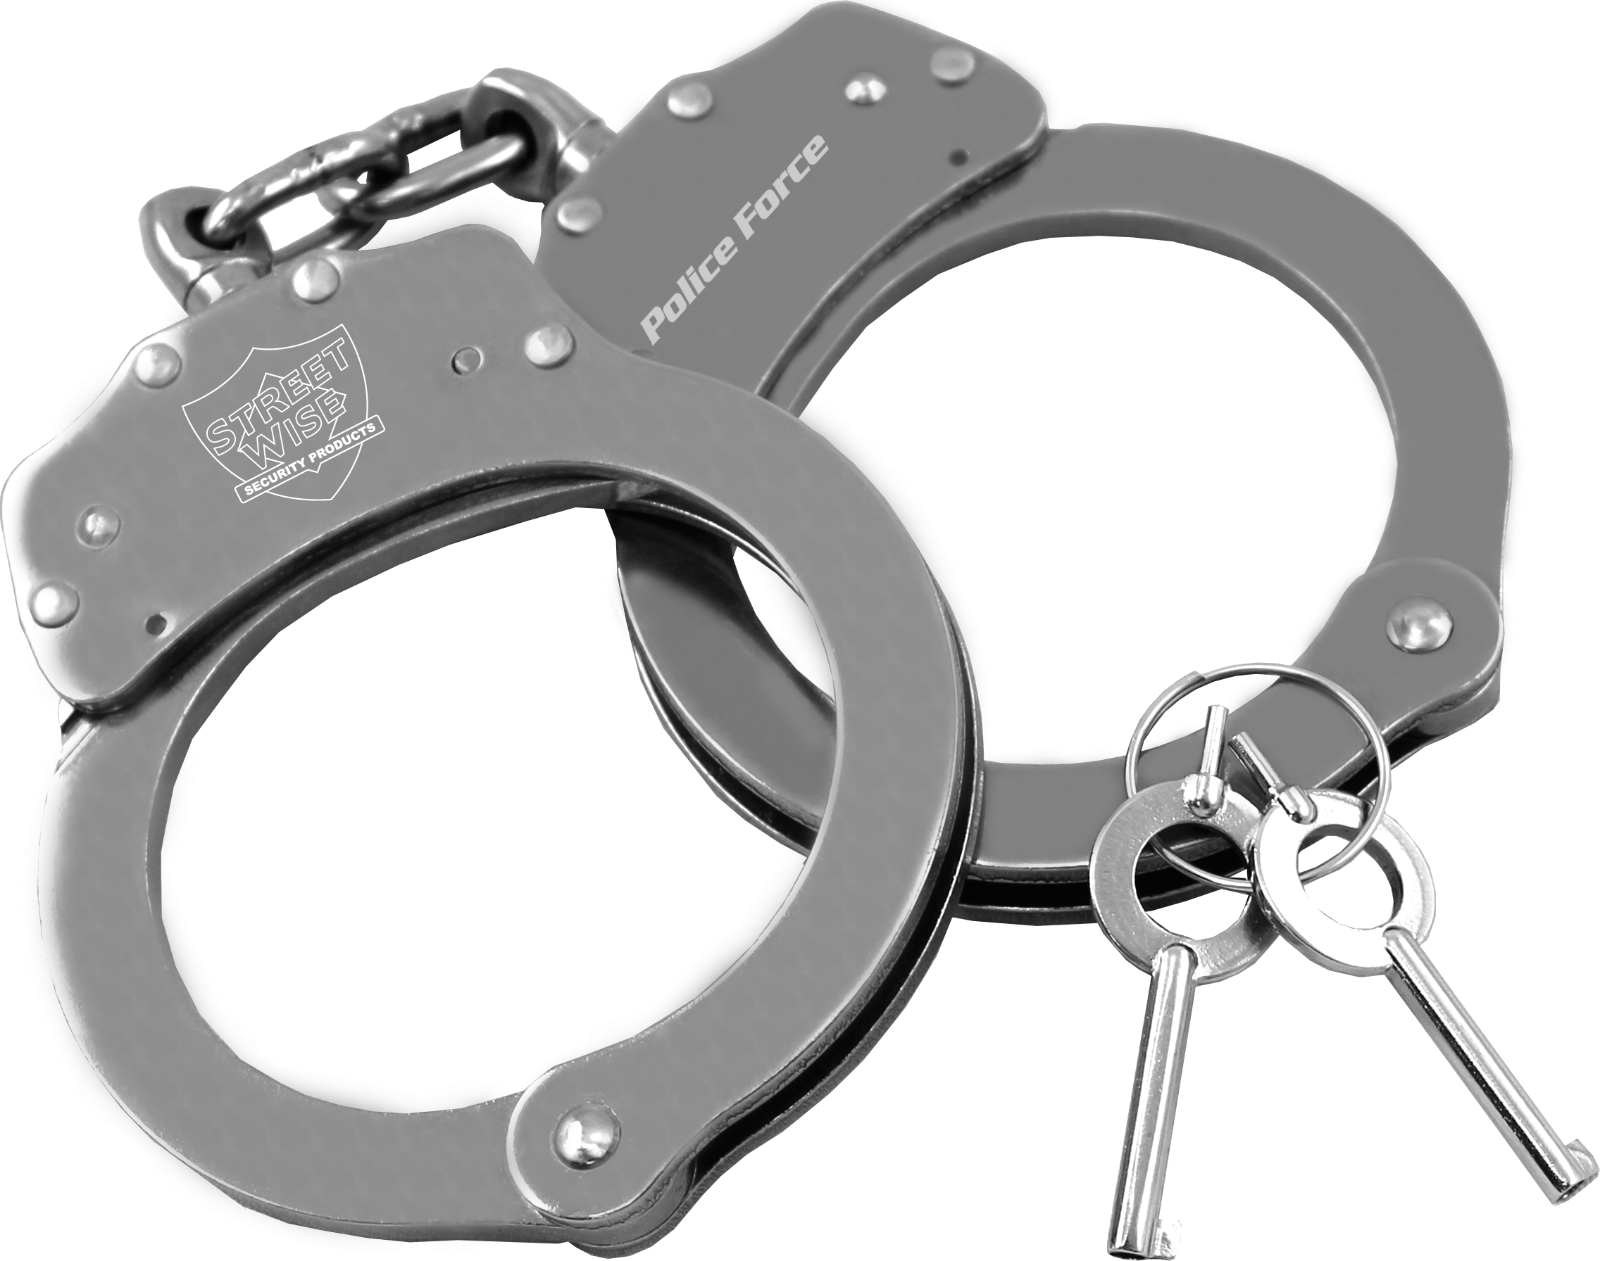 Handcuffs clothing accessories police. Handcuff clipart accessory